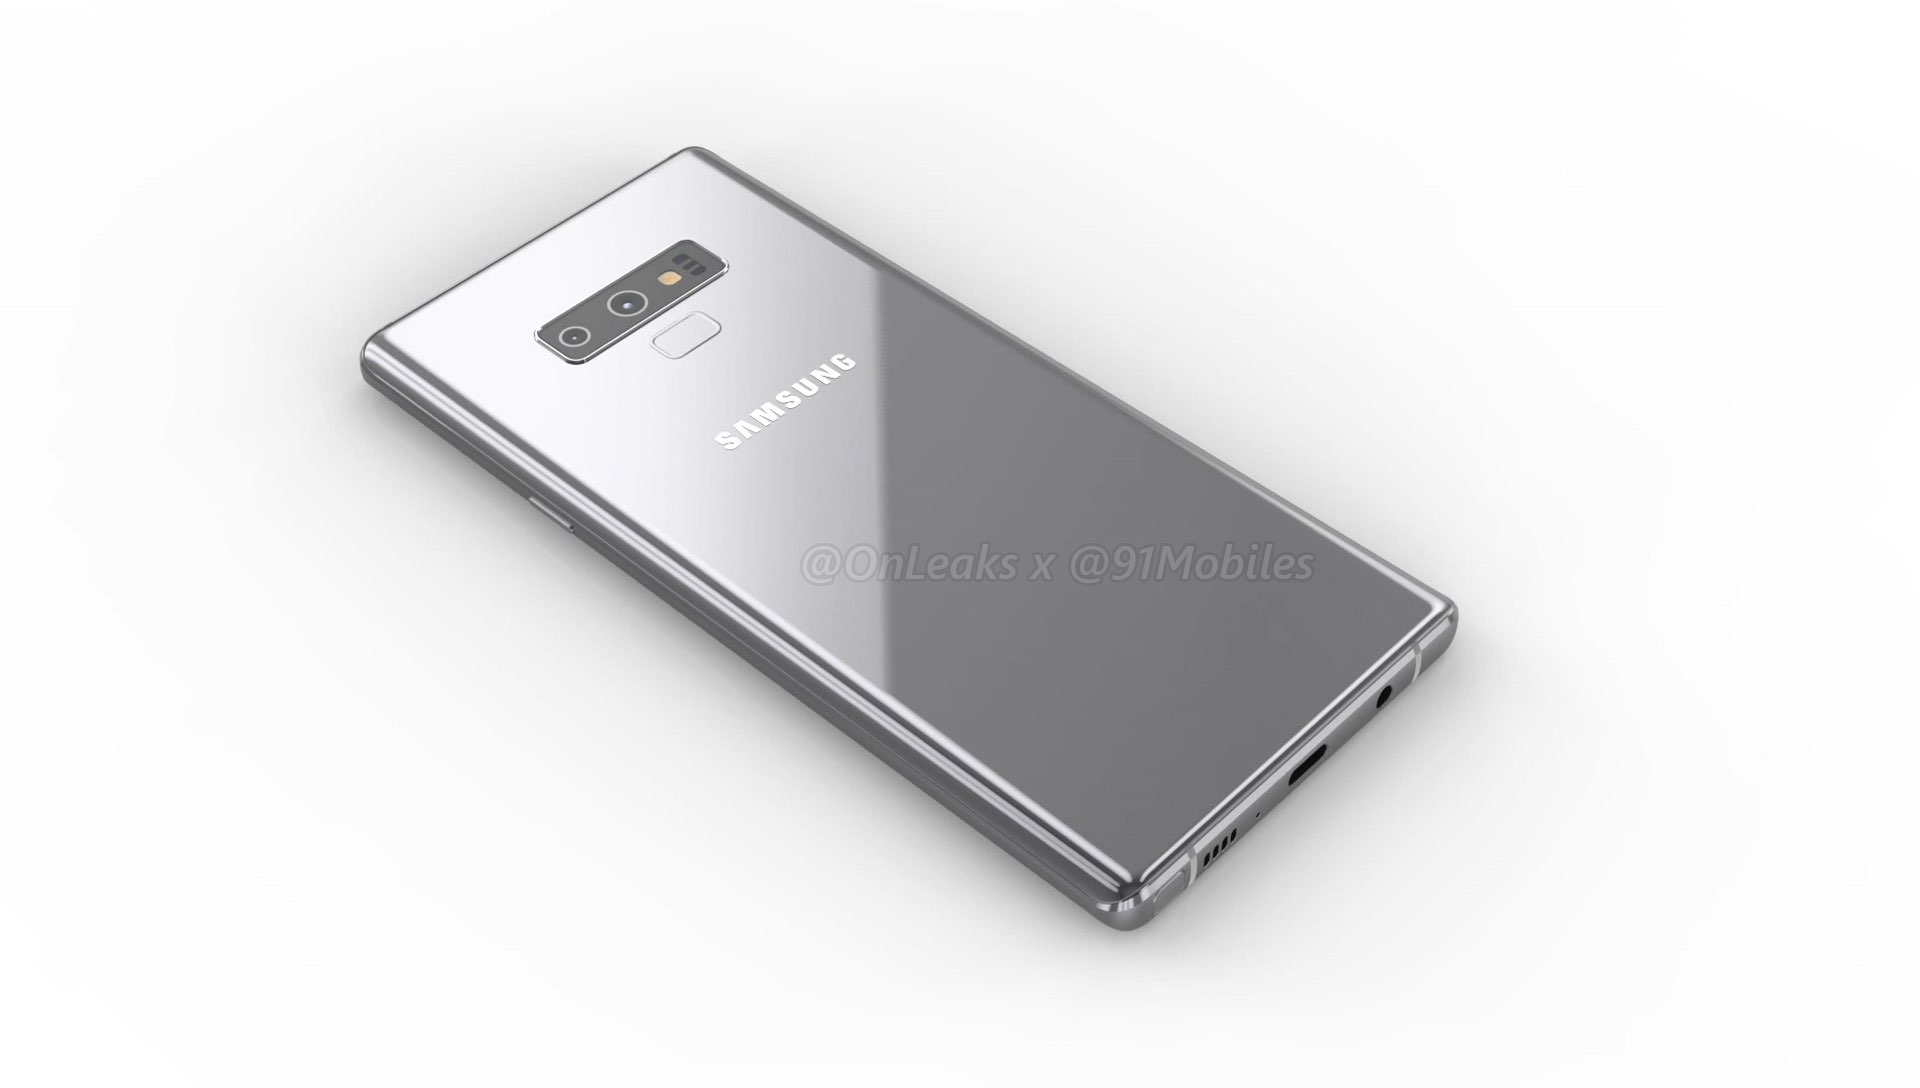 Samsung-Galaxy-Note-9-render-91mobiles-6-squashed